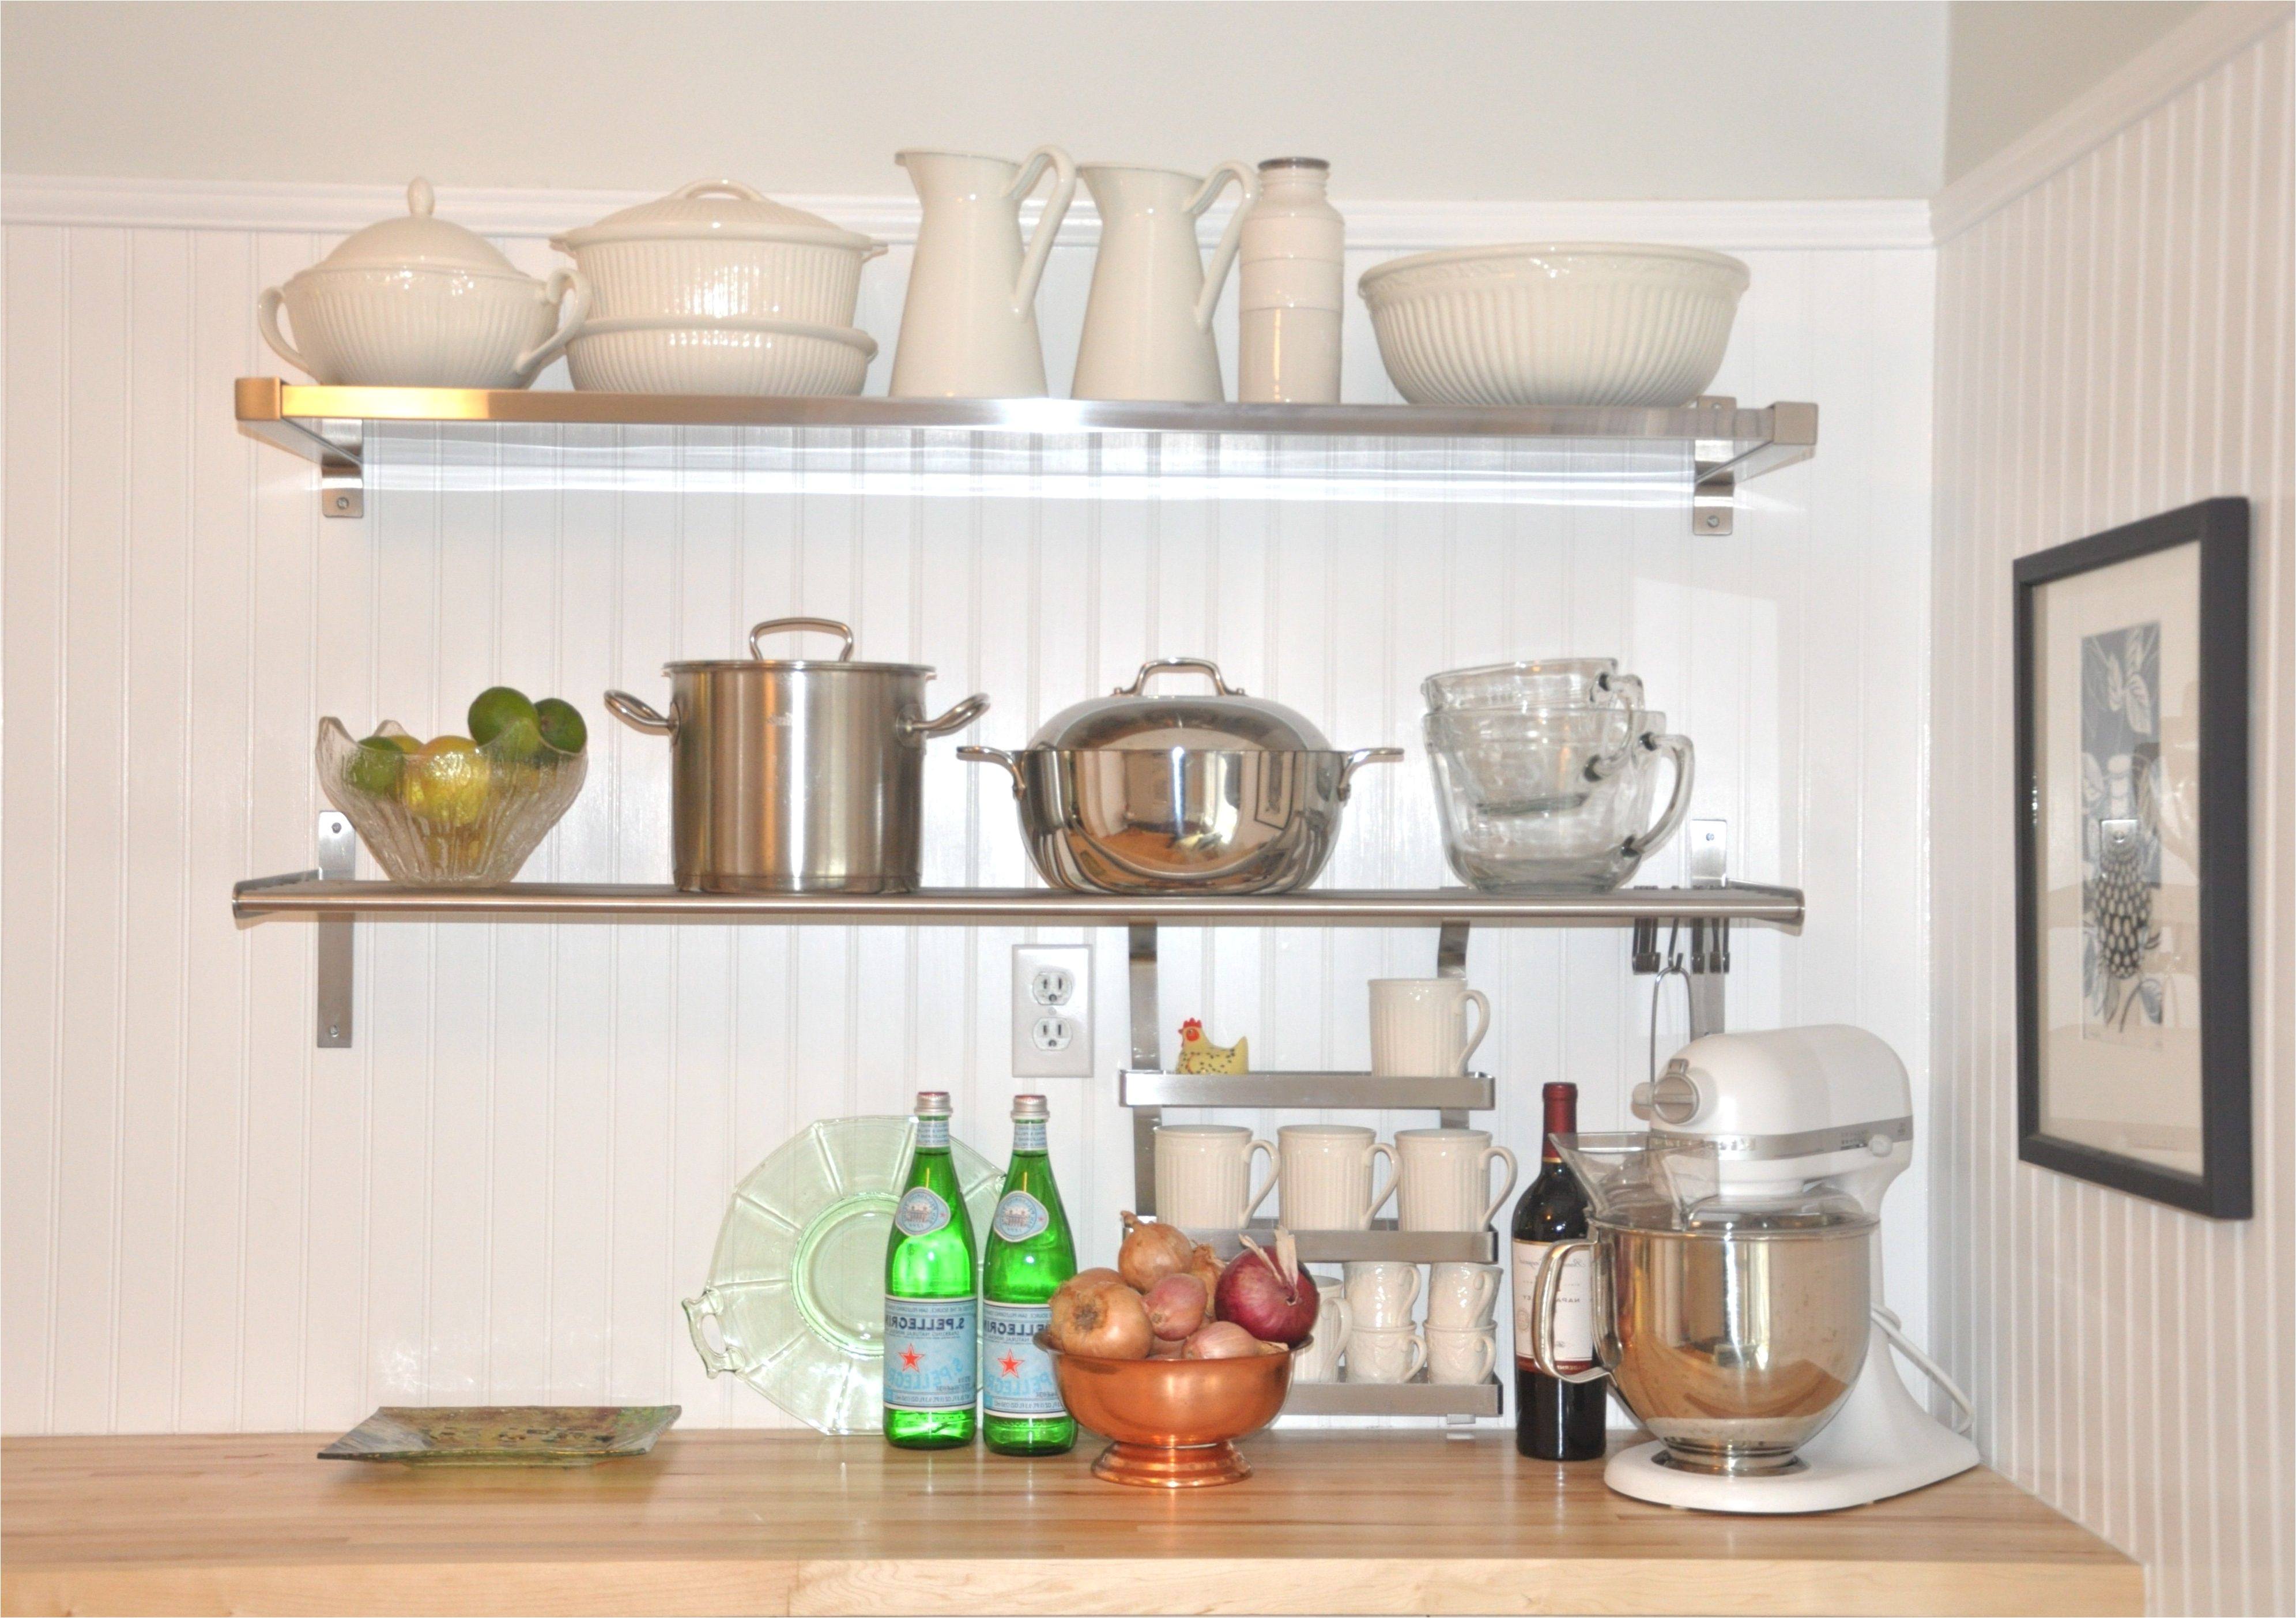 wall decoration stainless steel floating shelves throughout wonderful kitchen stainless steel floating shelves kitchen dinnerware on lovely stainless